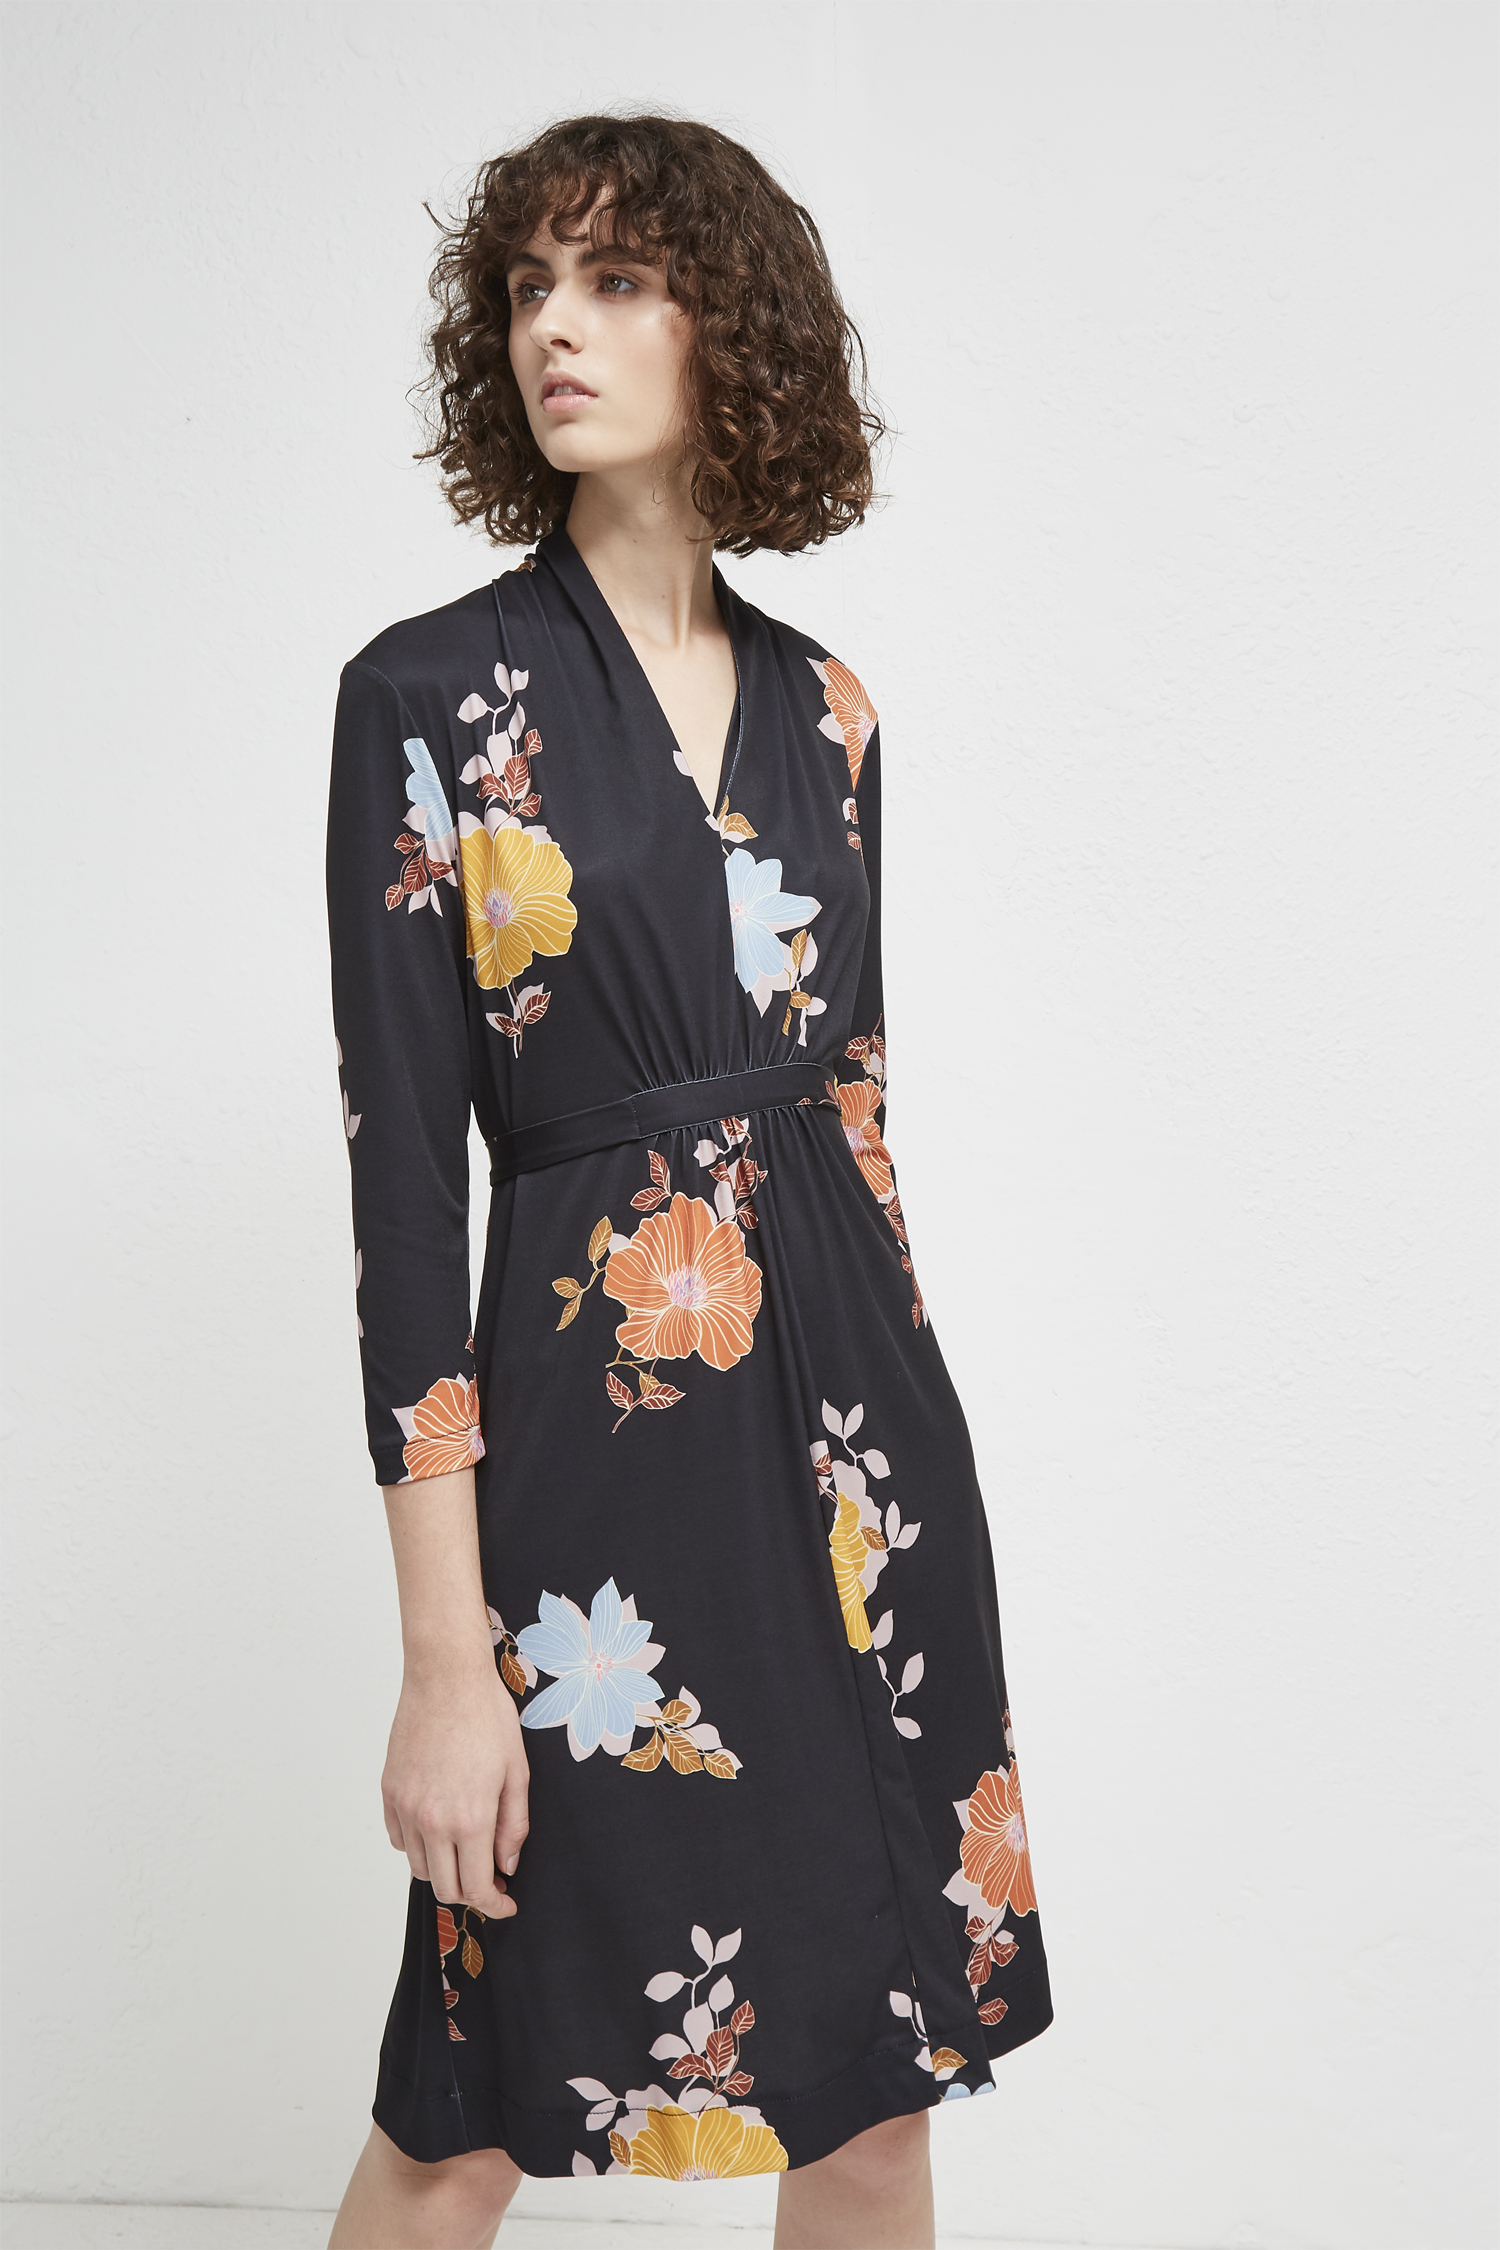 High Neck Floral Dress With Flare Sleeve - Black/beige Parisian Genuine Sale Online Quality From China Cheap ihpstdix